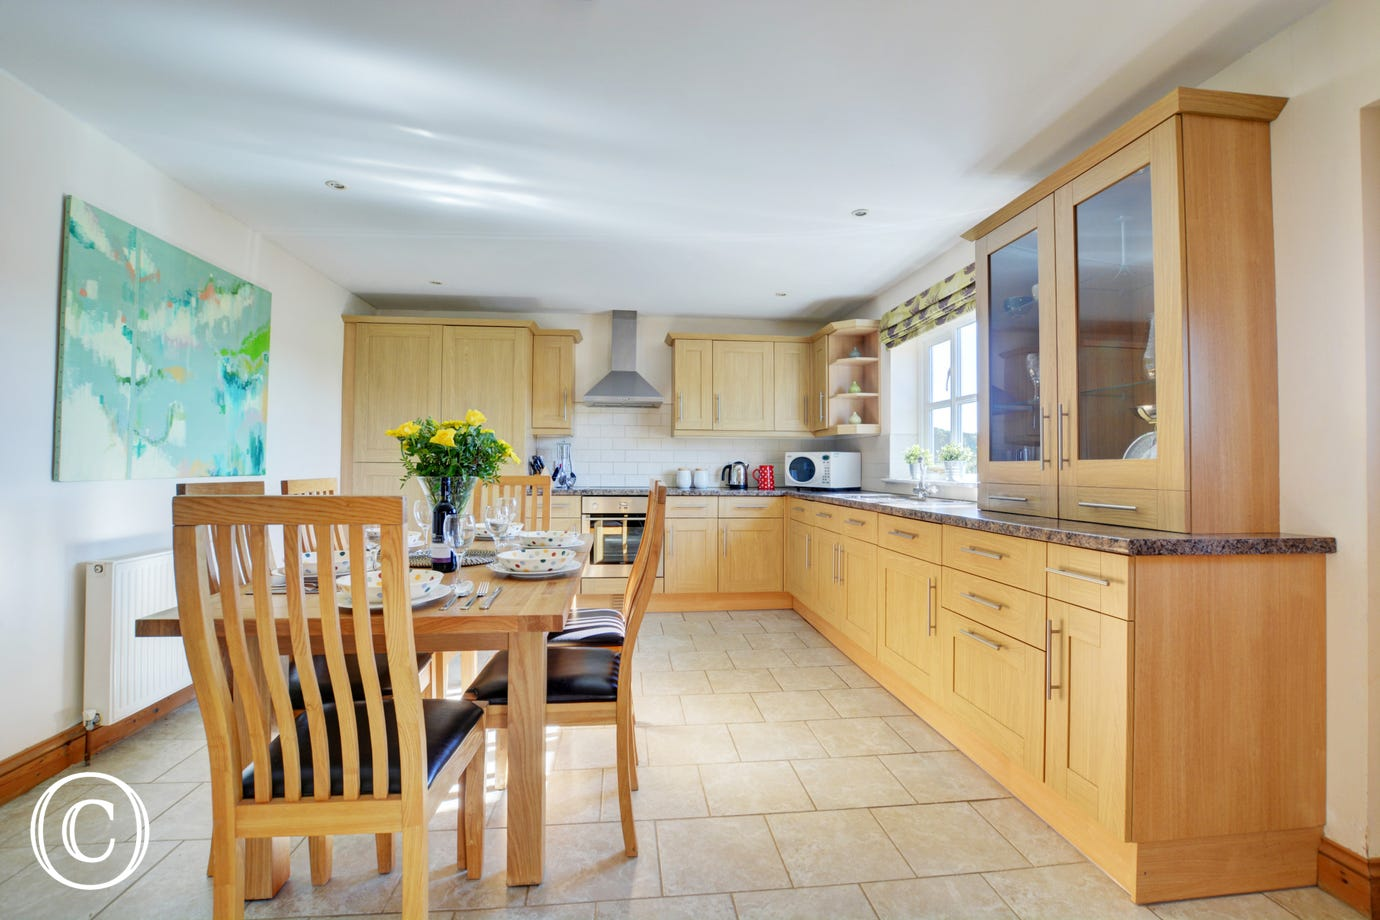 The kitchen is large and spacious with a table and chairs for dining, perfect for family meals